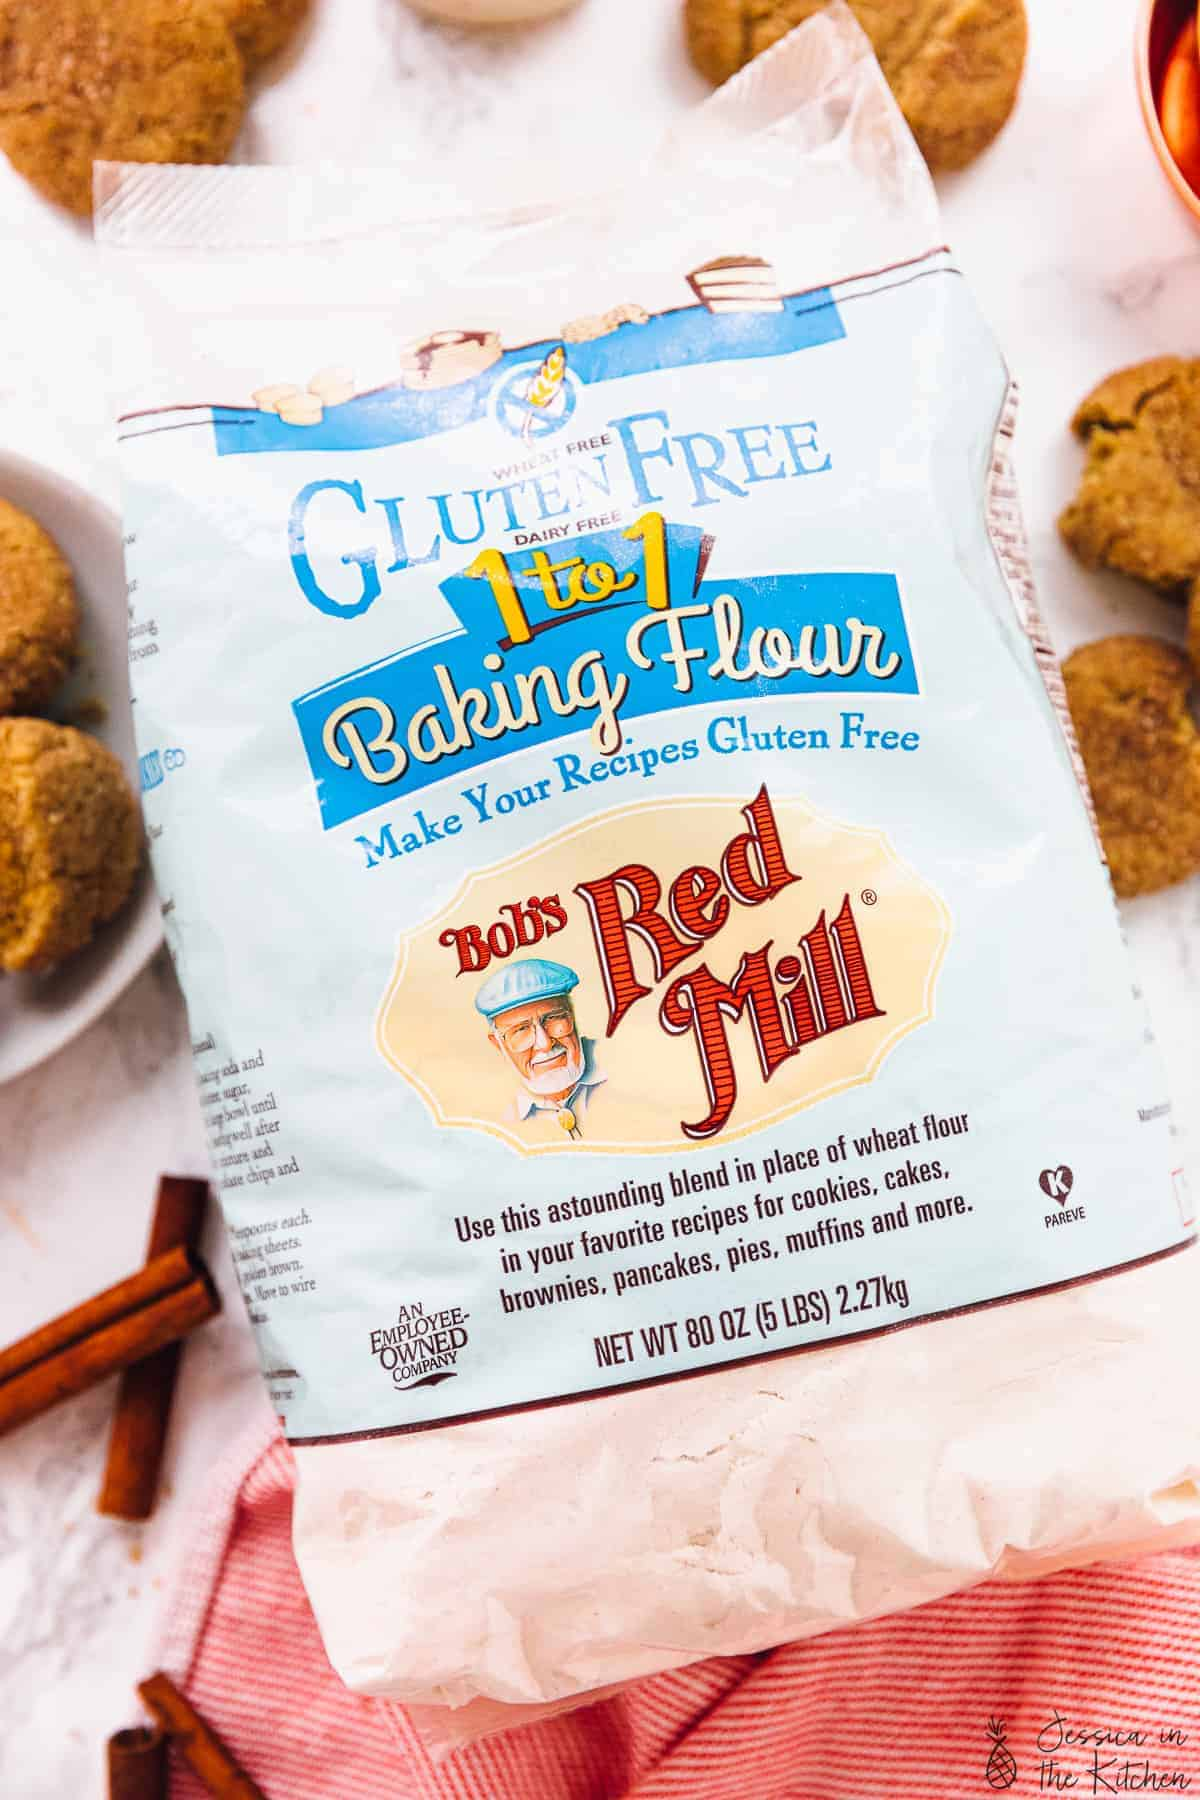 Bob's Red Mill Gluten Free Flour surrounded by cookies and cinnamon sticks.